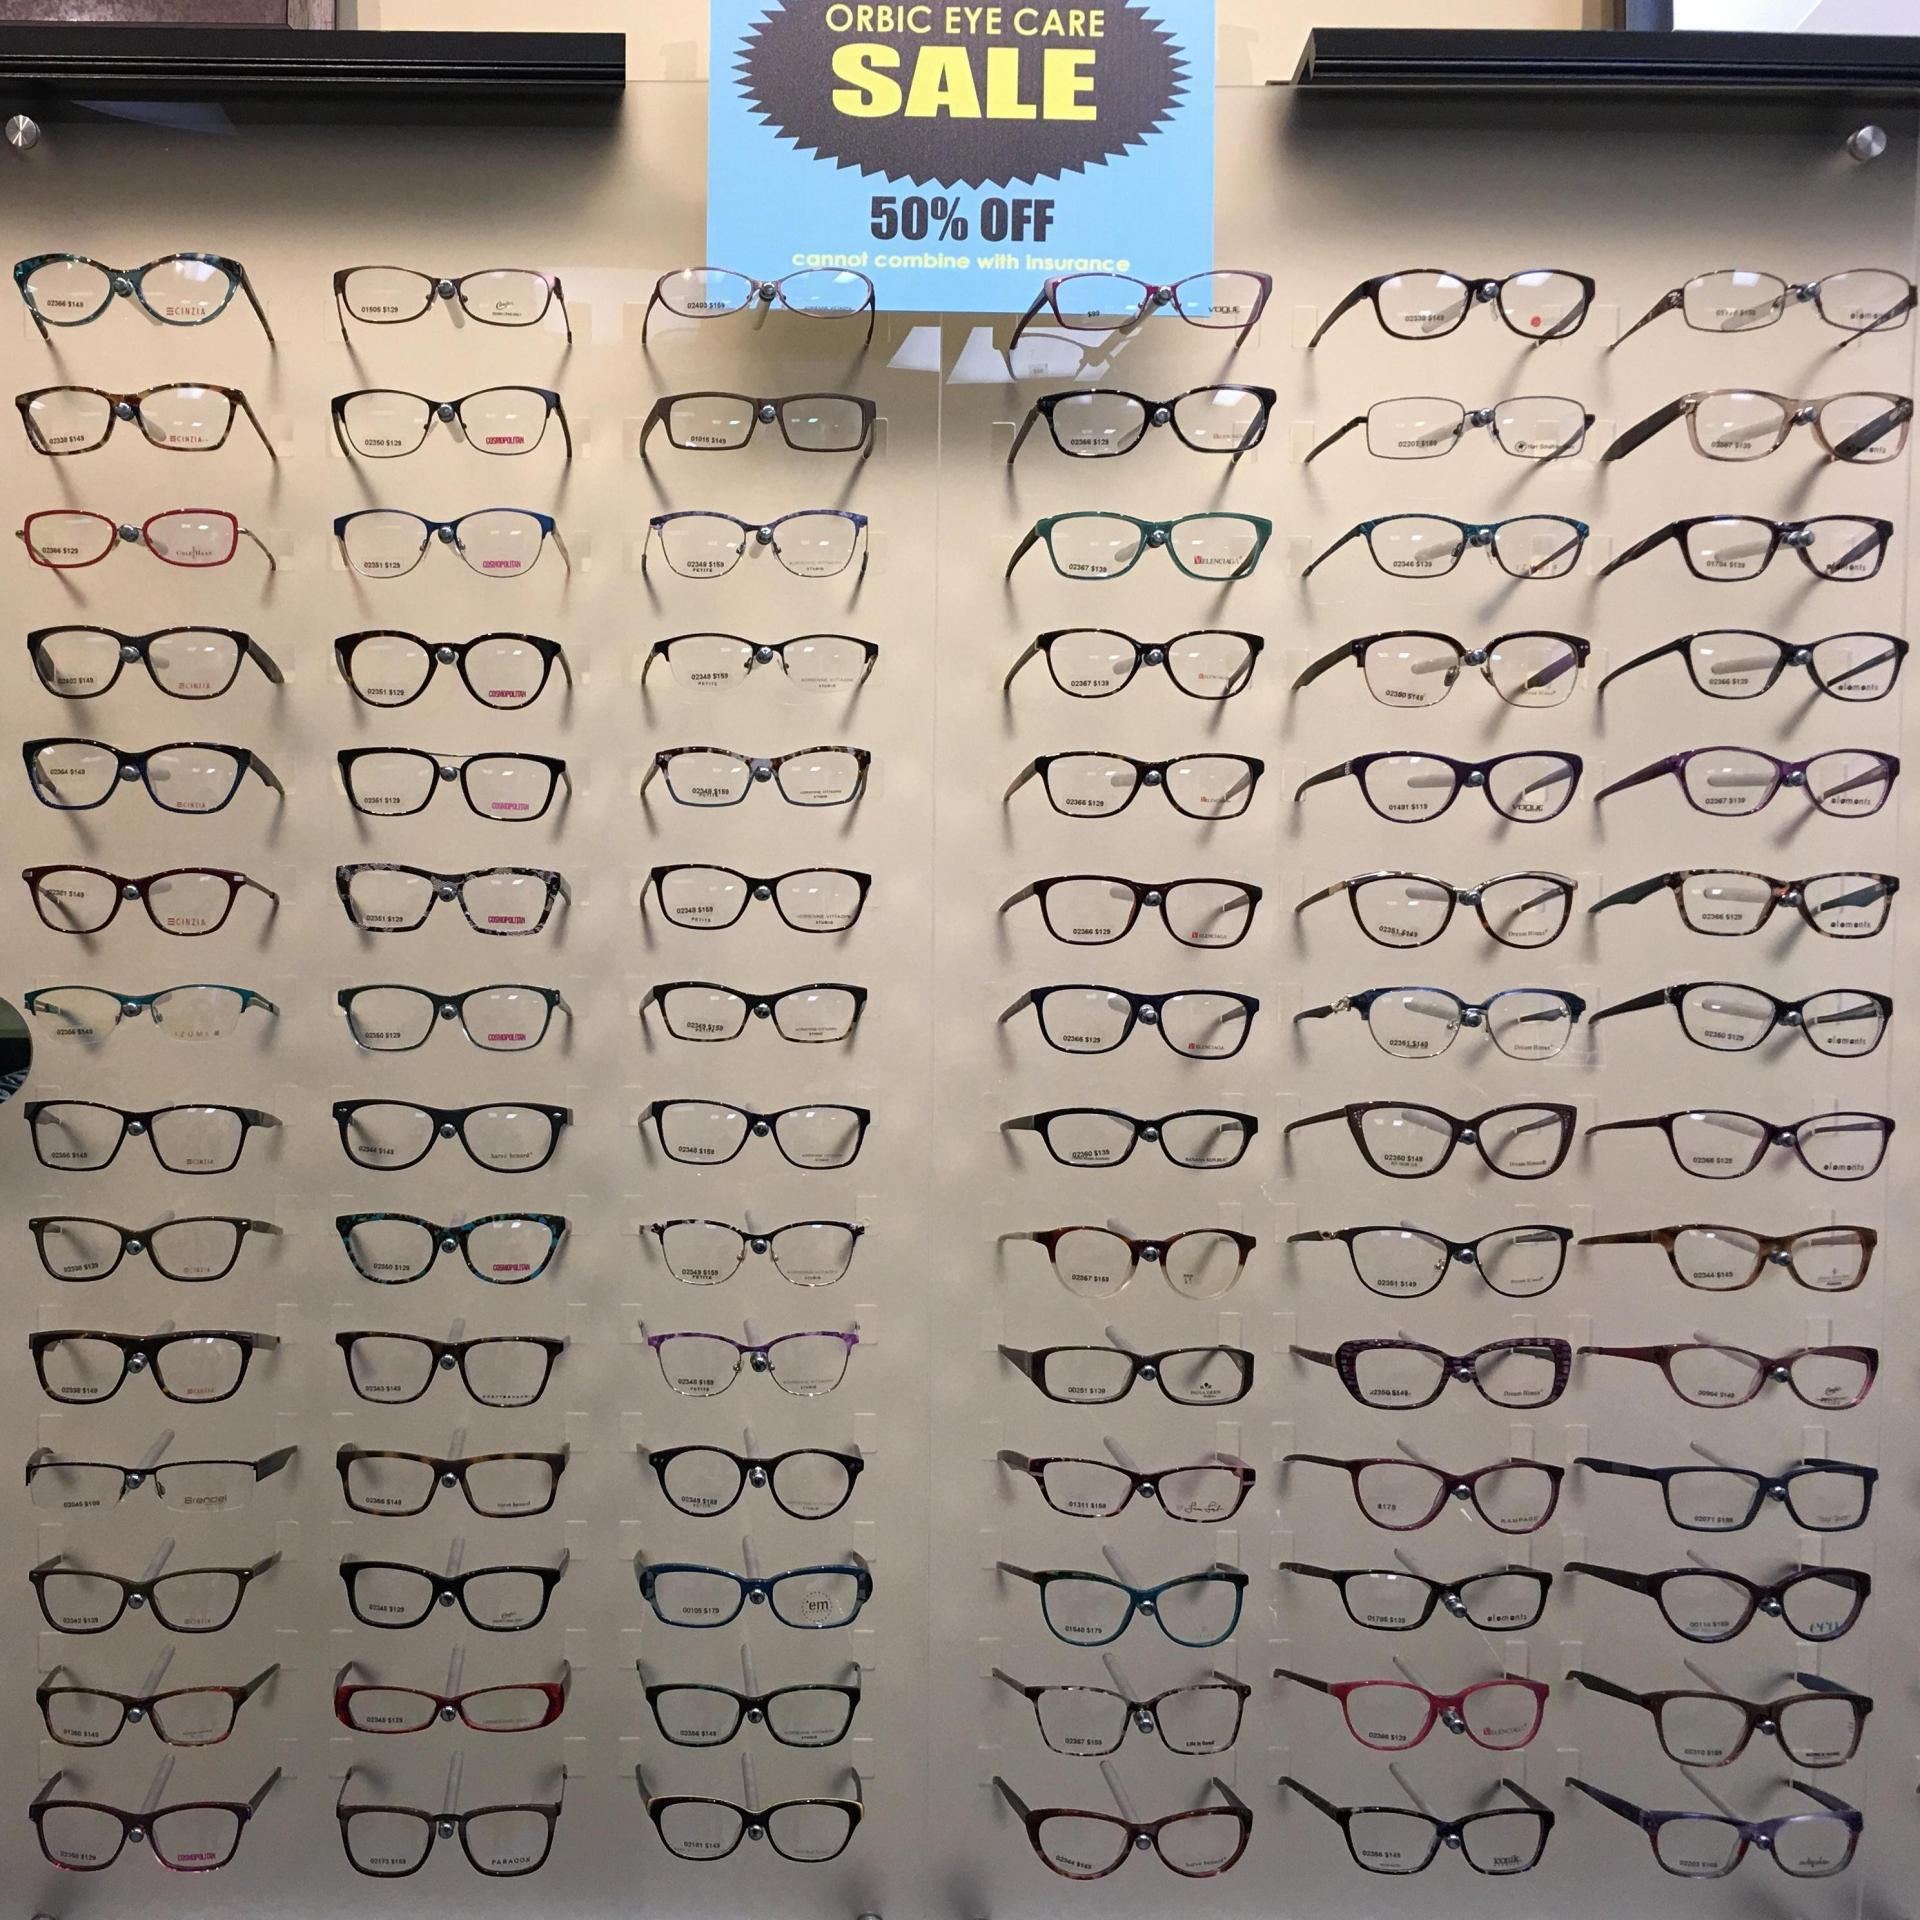 616358f645c2 2 Pairs for $38 including Frames+single vision plastic lenses